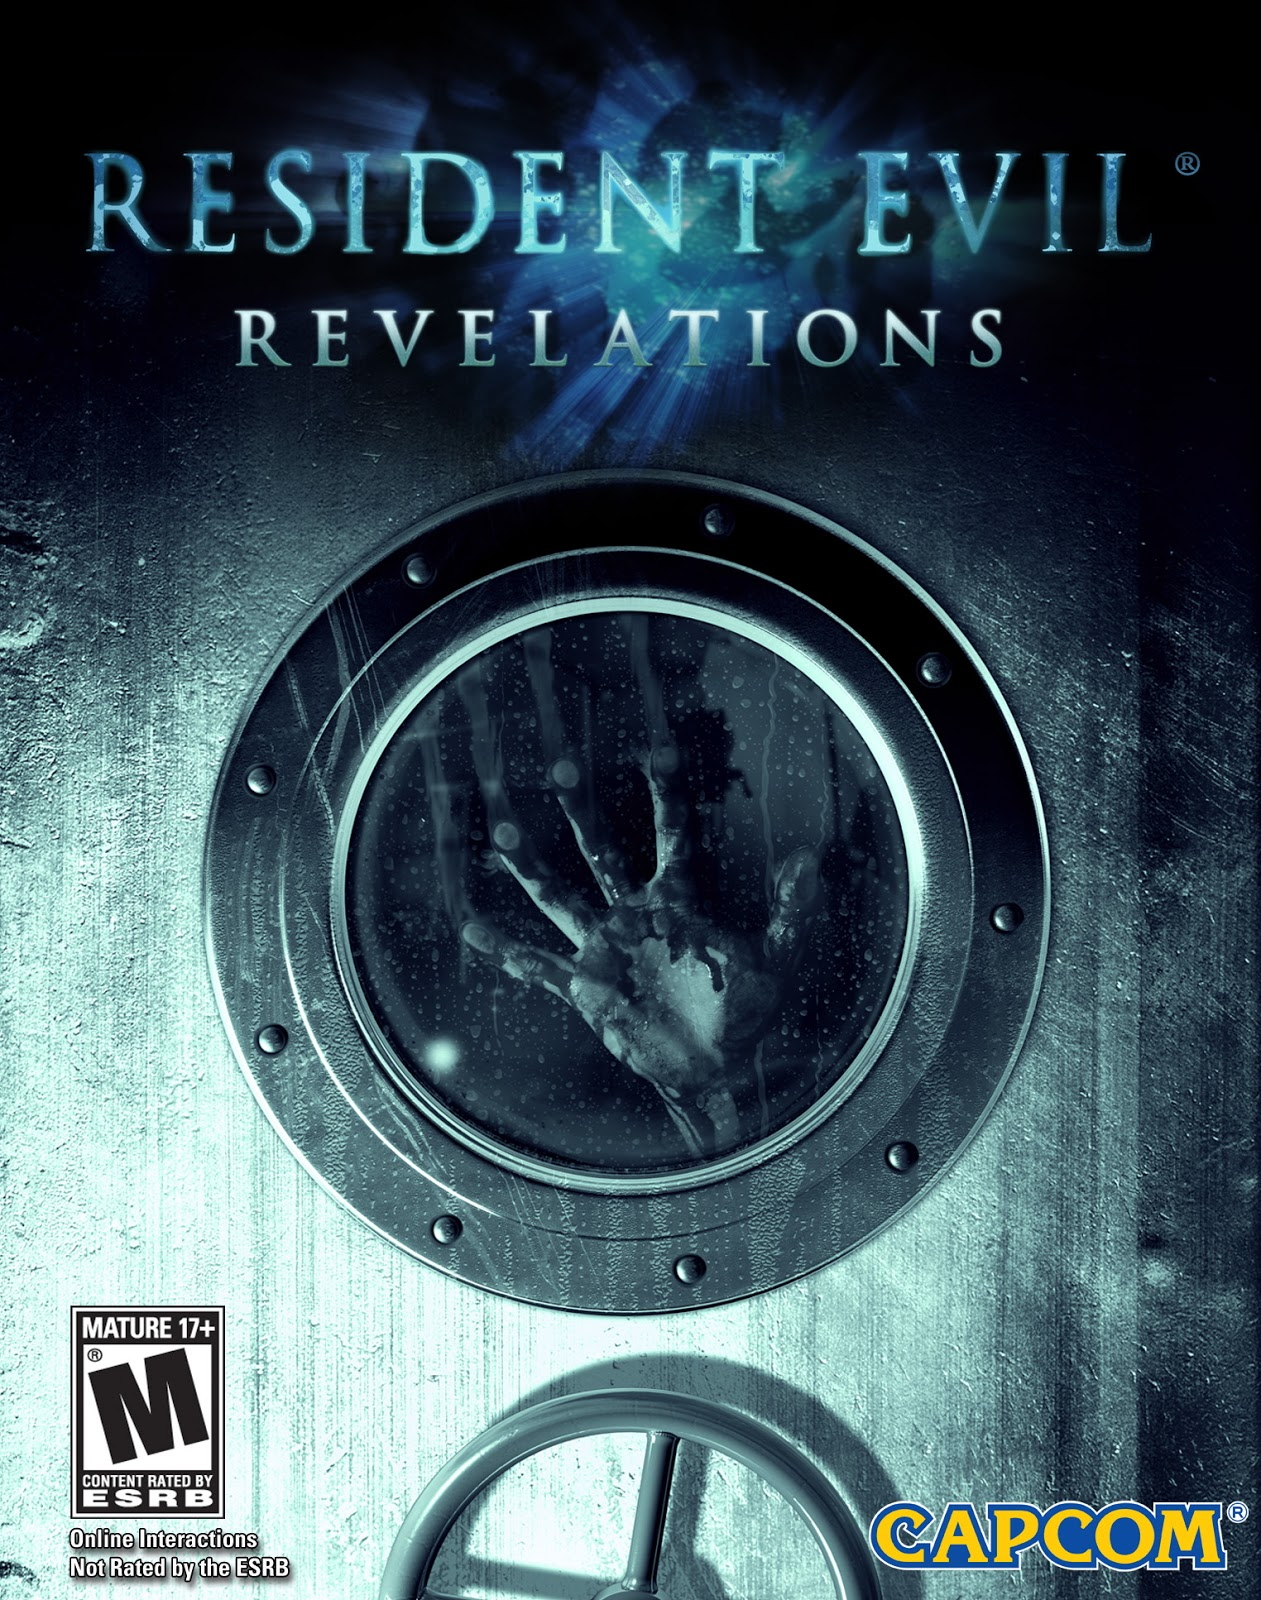 Resident evil revelations flt upgrade graphics level and sound